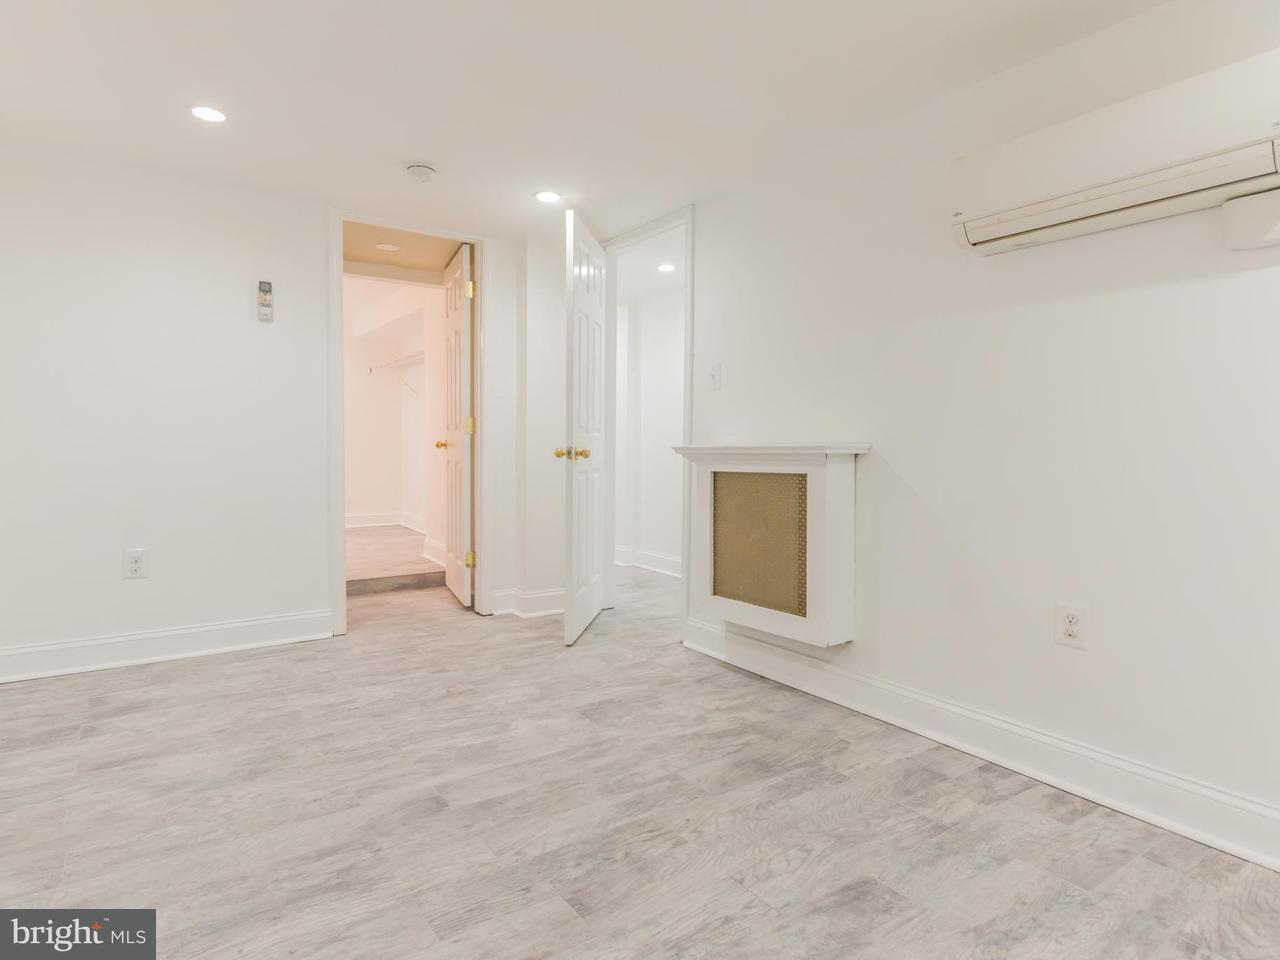 Additional photo for property listing at 1319 21st St Nw 1319 21st St Nw Washington, District Of Columbia 20036 United States